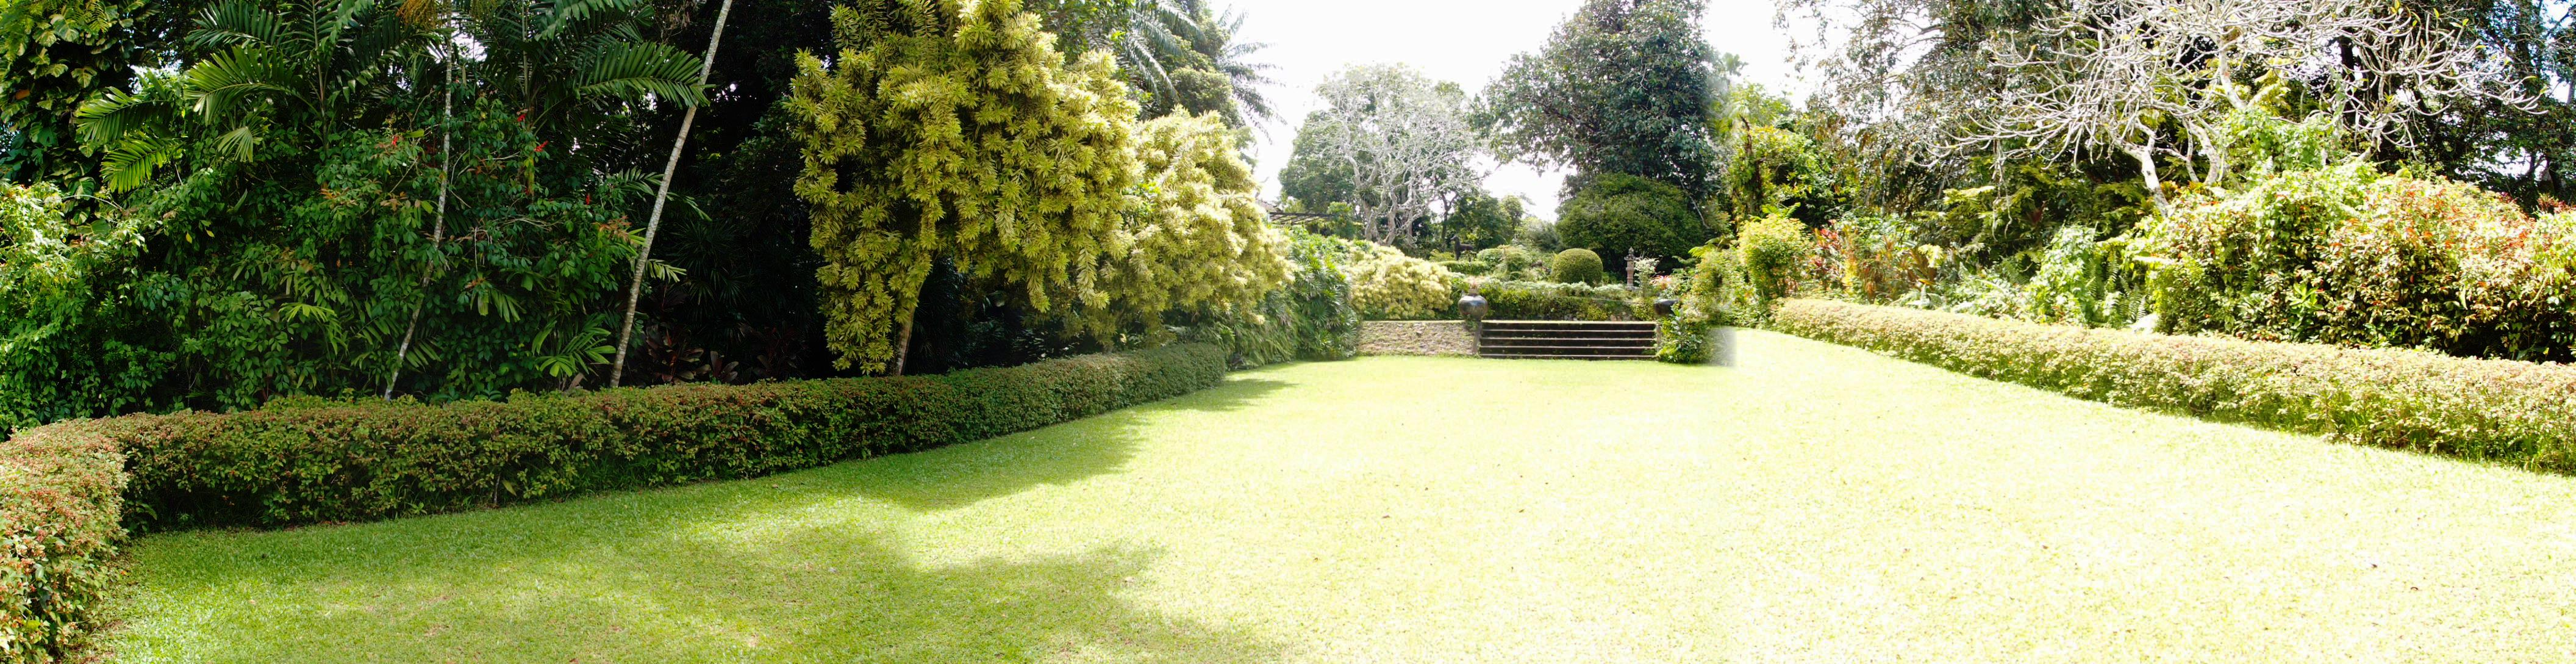 Brief the home and garden of bevis bawa sri lanka for Home landscape design sri lanka